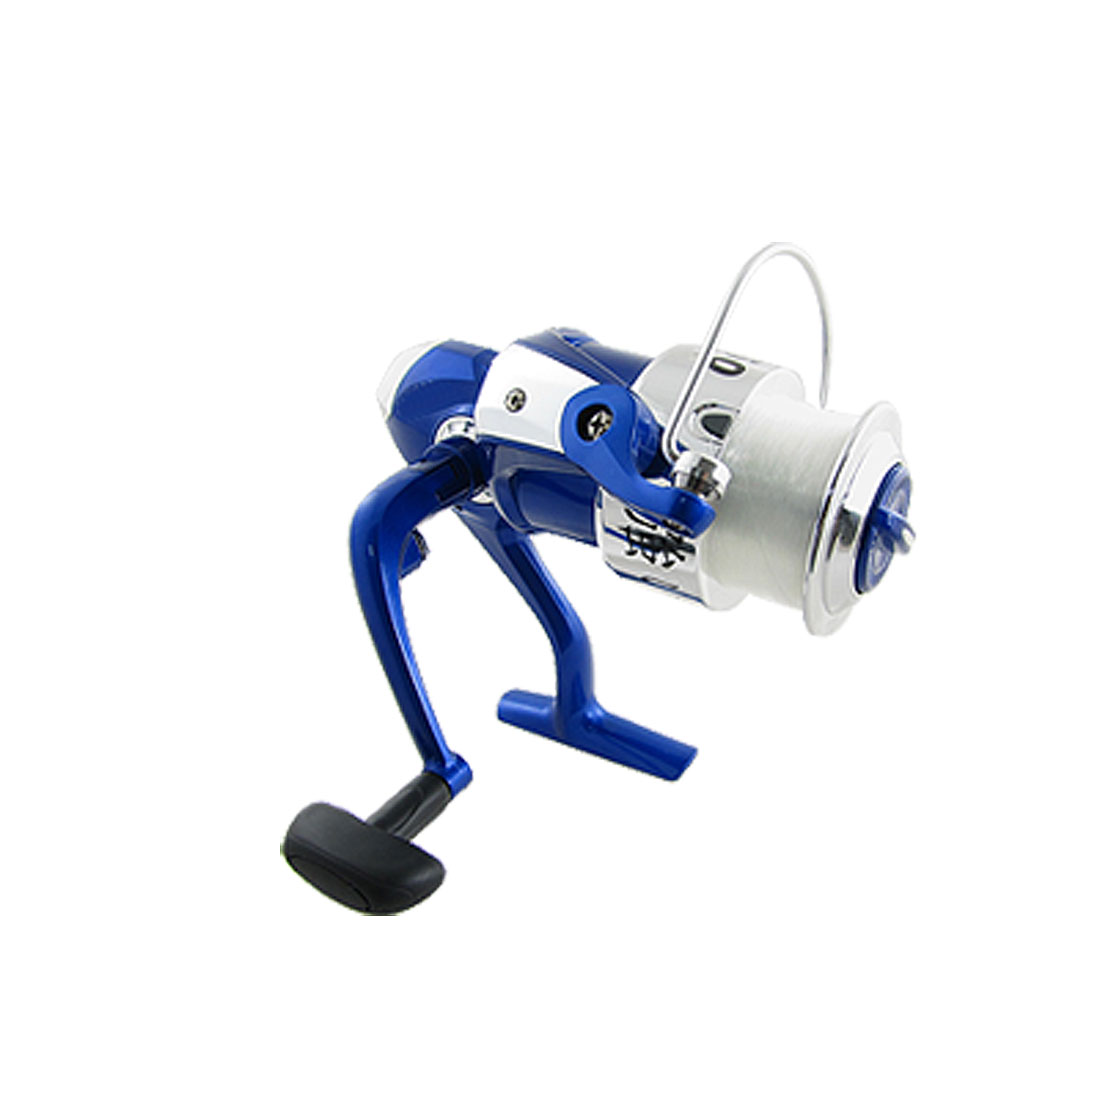 Anti-reverse Lever Gear Ratio 4.7:1 Fishing Spinning Reel